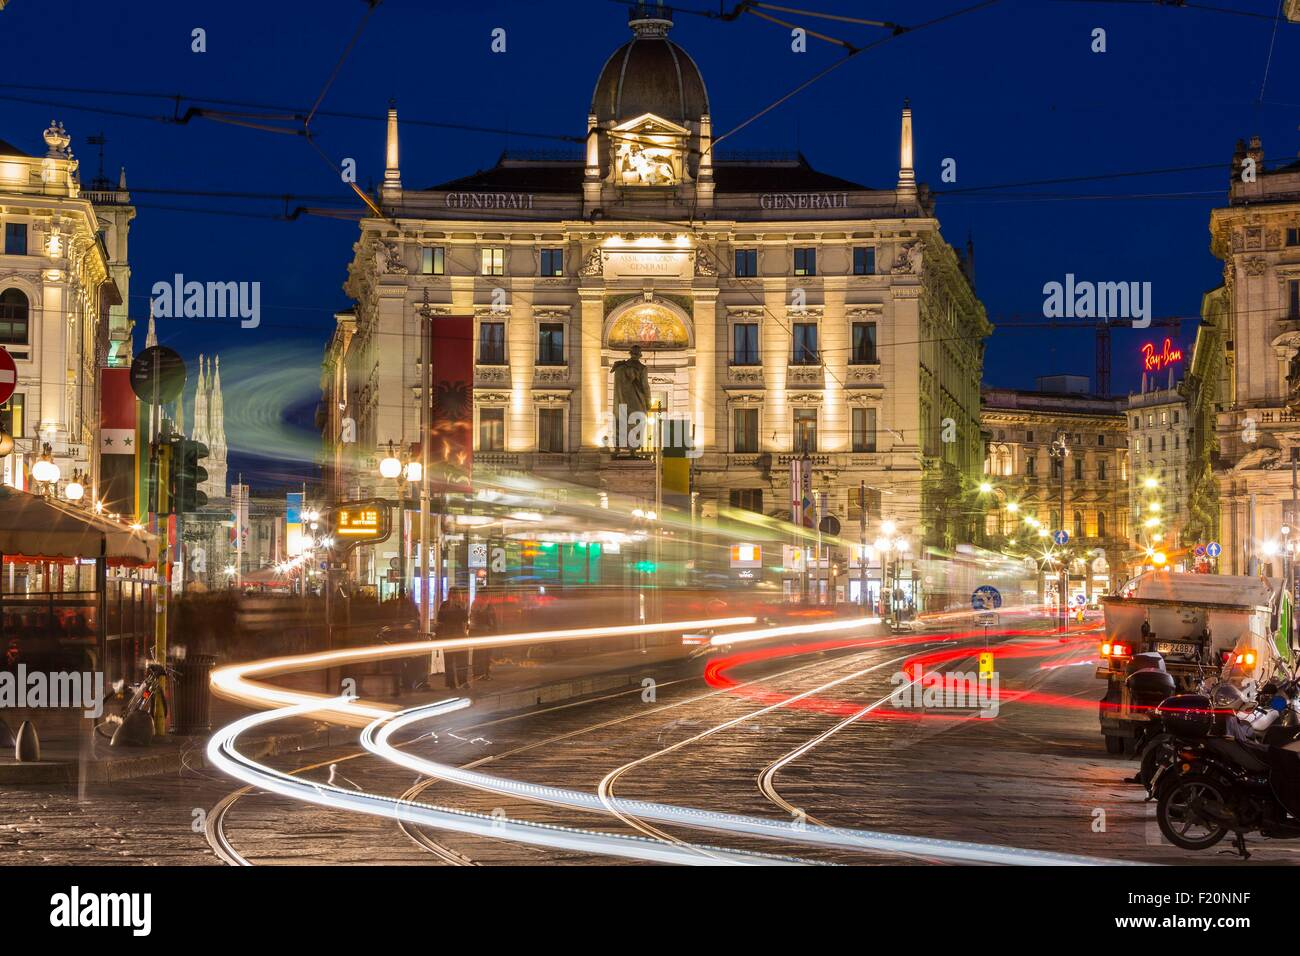 Italy, Lombardy, Milan, piazza Cordusio square - Stock Image